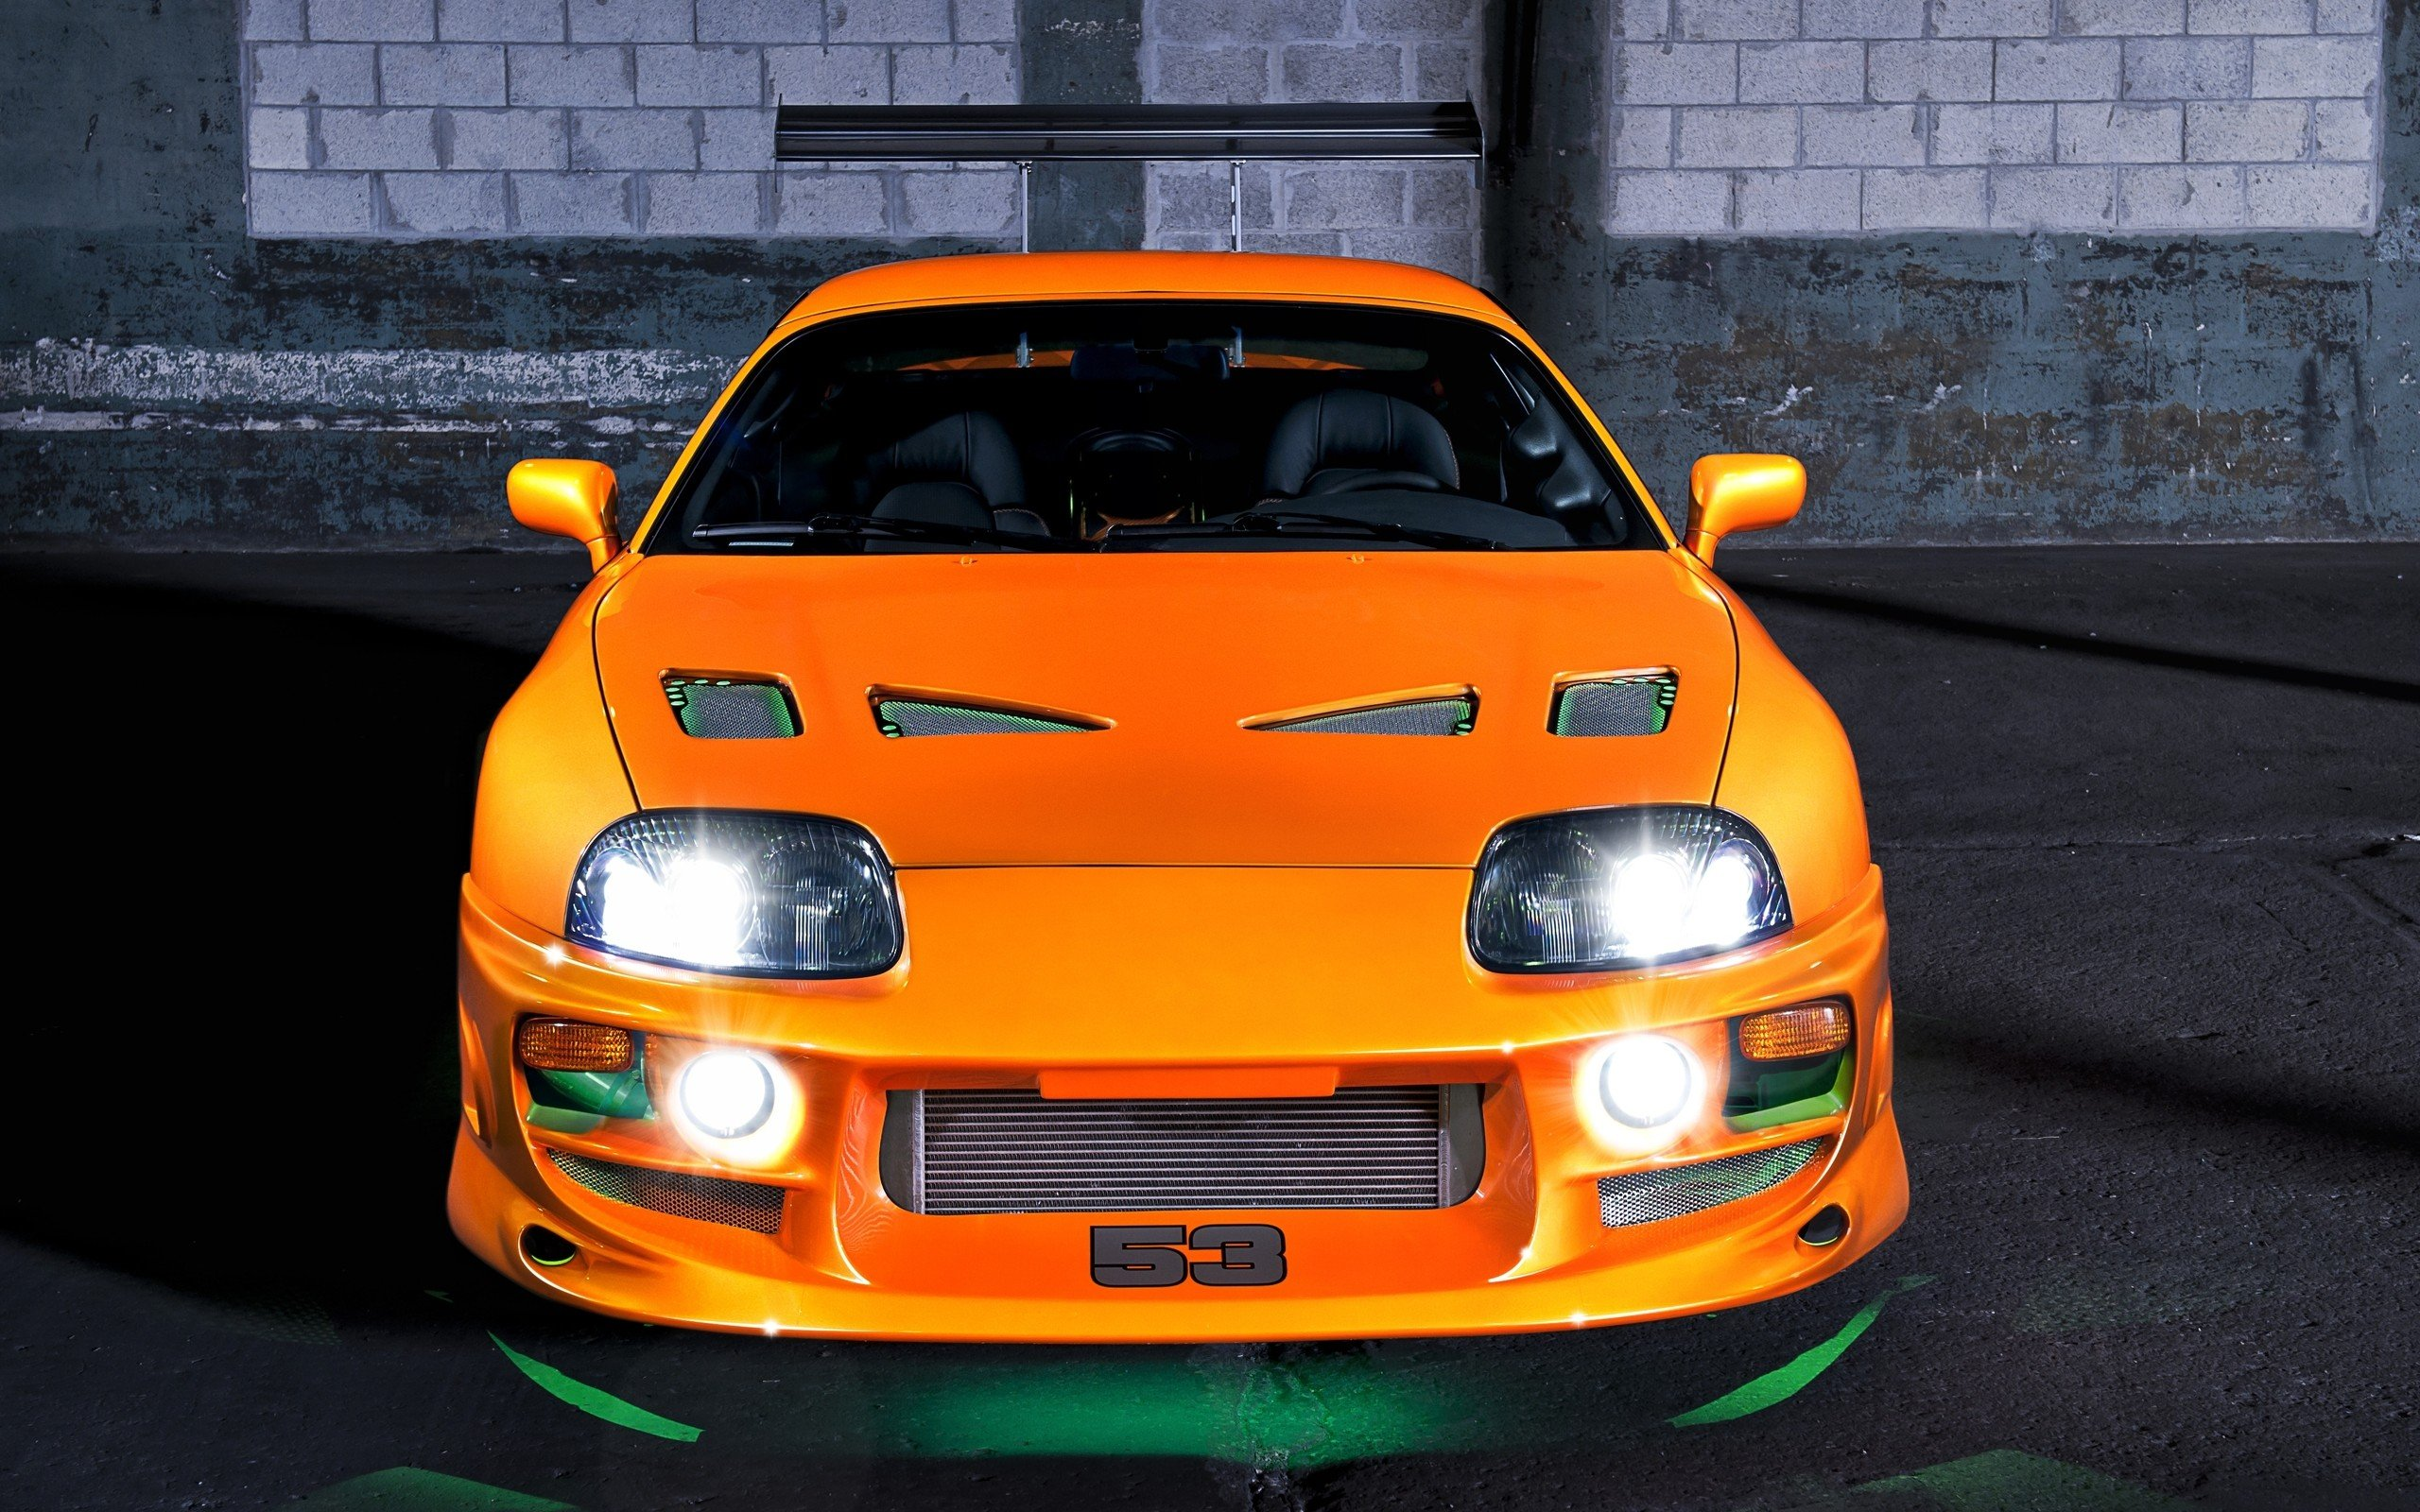 Toyota Supra From The Fast And The Furious Cars Fast And Furious Toyota Supra Jdm Japanese Domestic Market